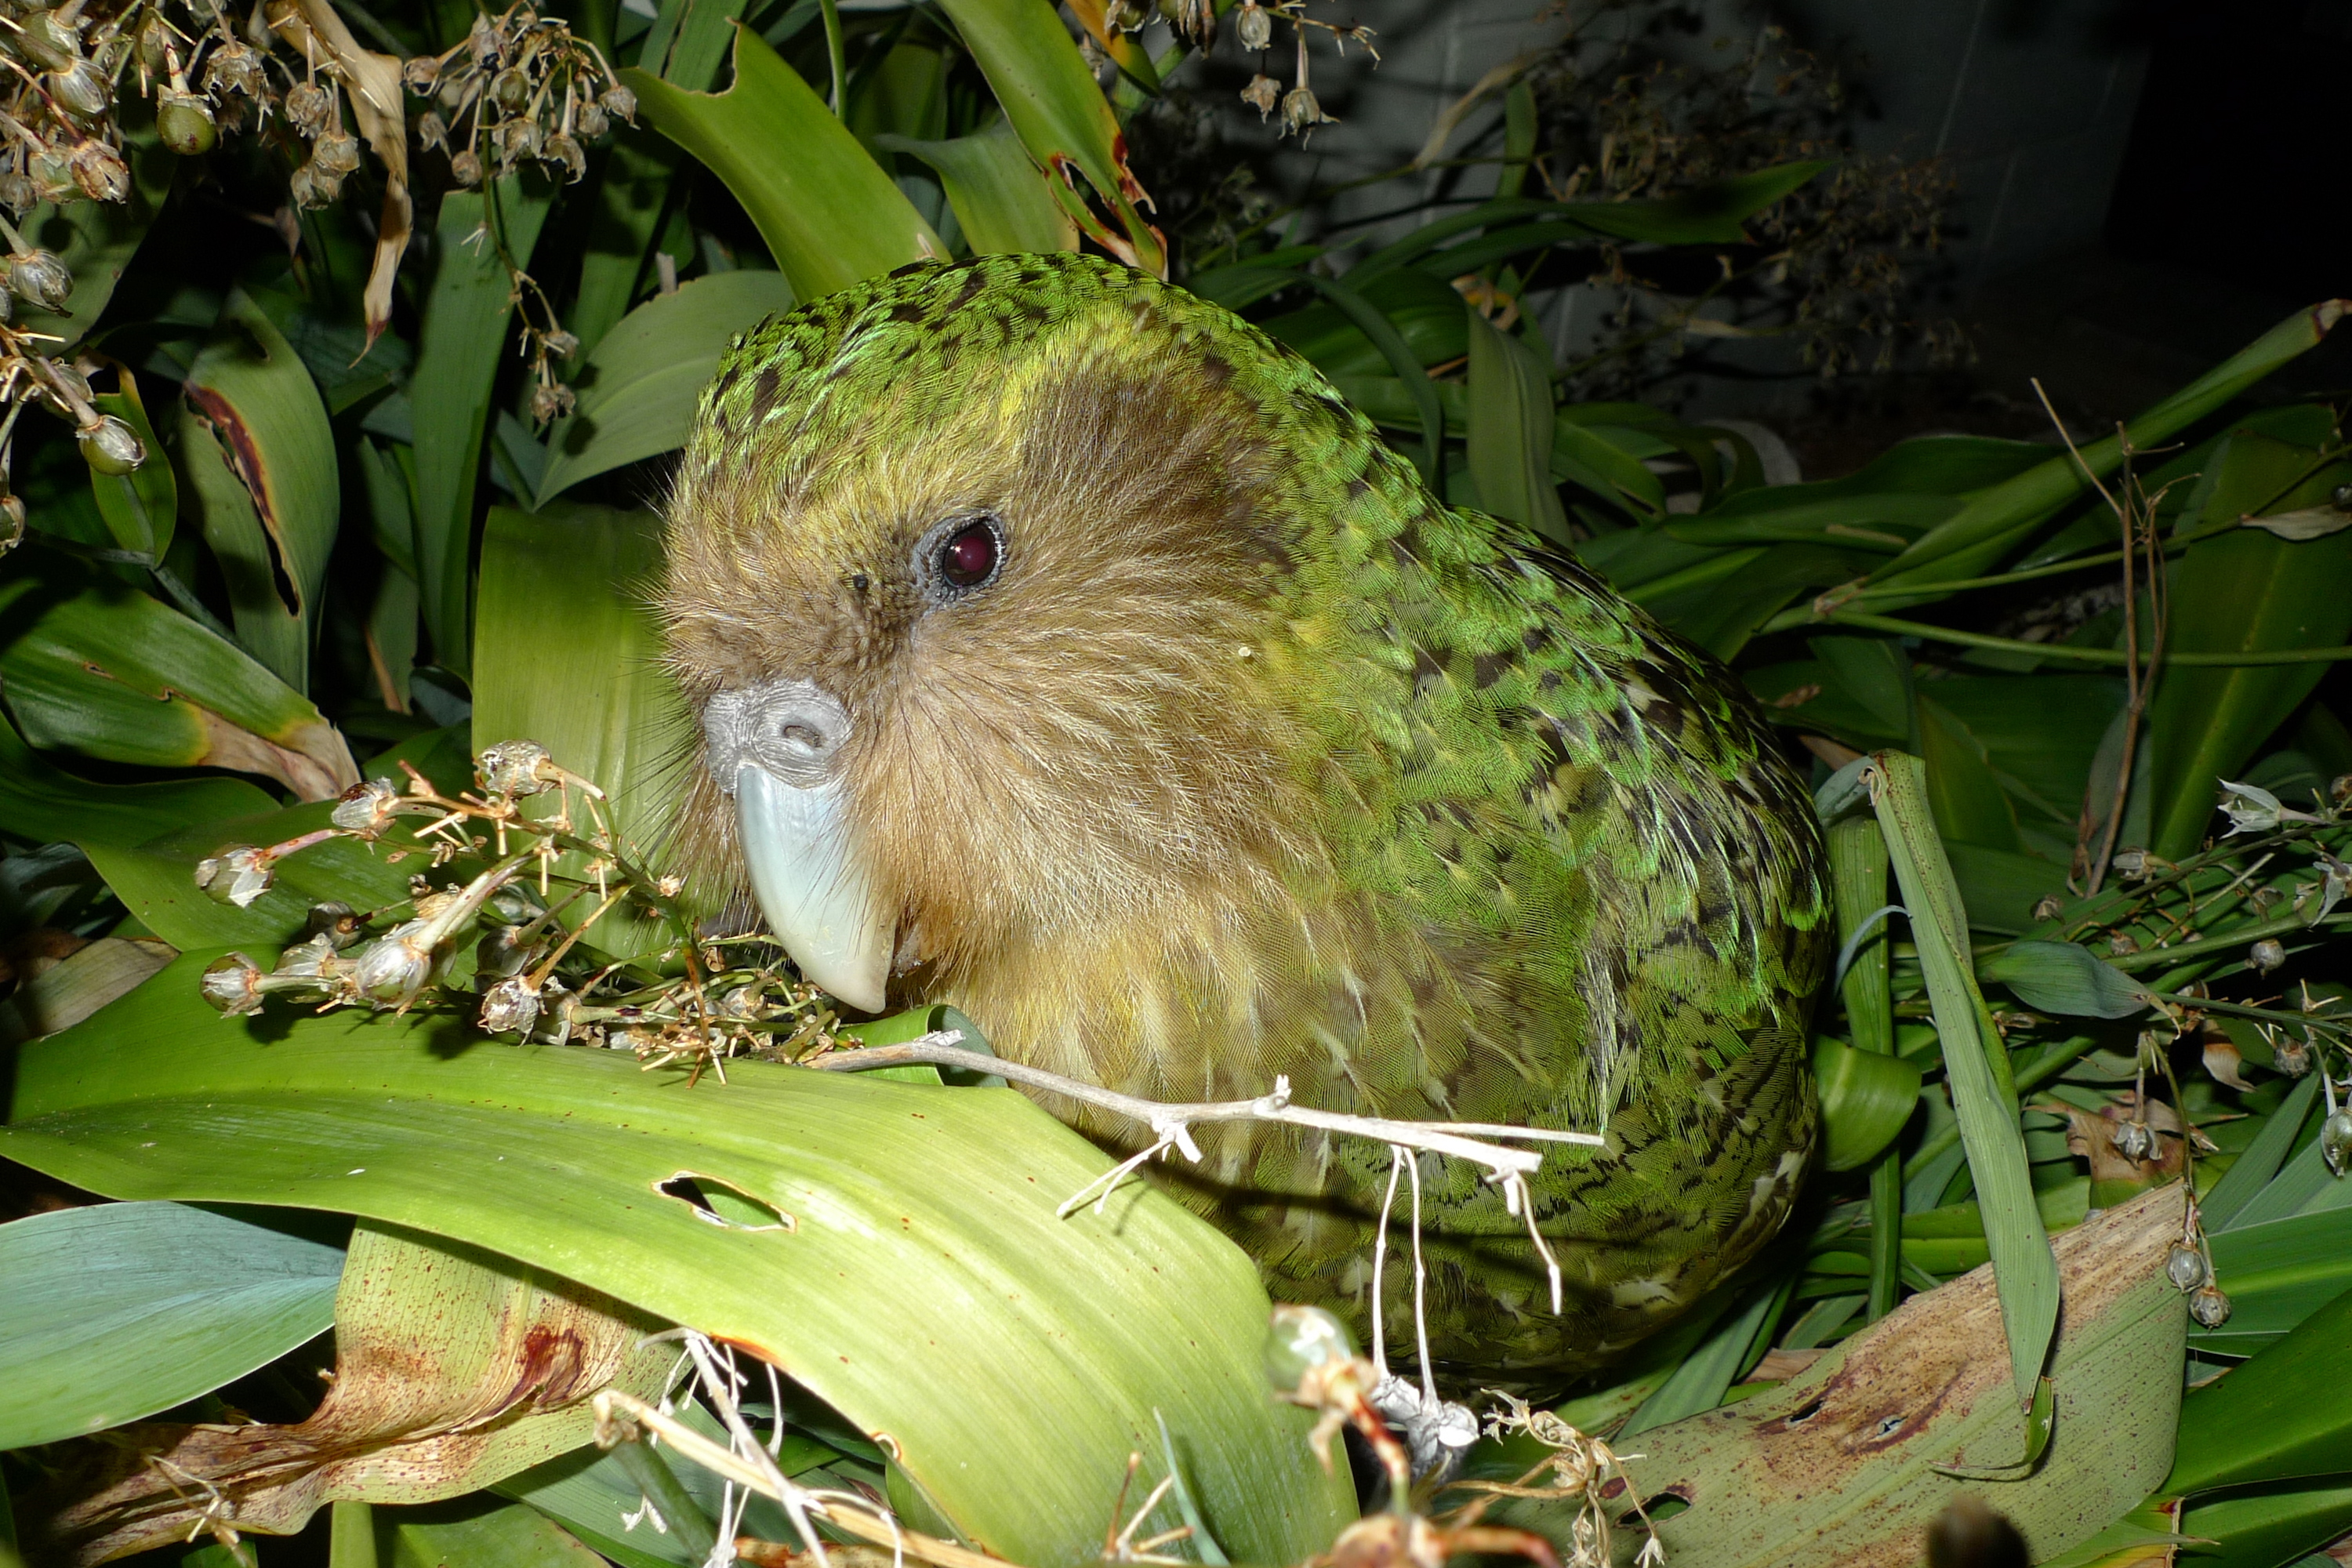 Sirocco the kākāpō among renga lilies on Maud Island, New Zealand. Photo by Chris Birmingham for New Zealand Department of Conservation via Flickr, licensed under (CC-BY-2.0).